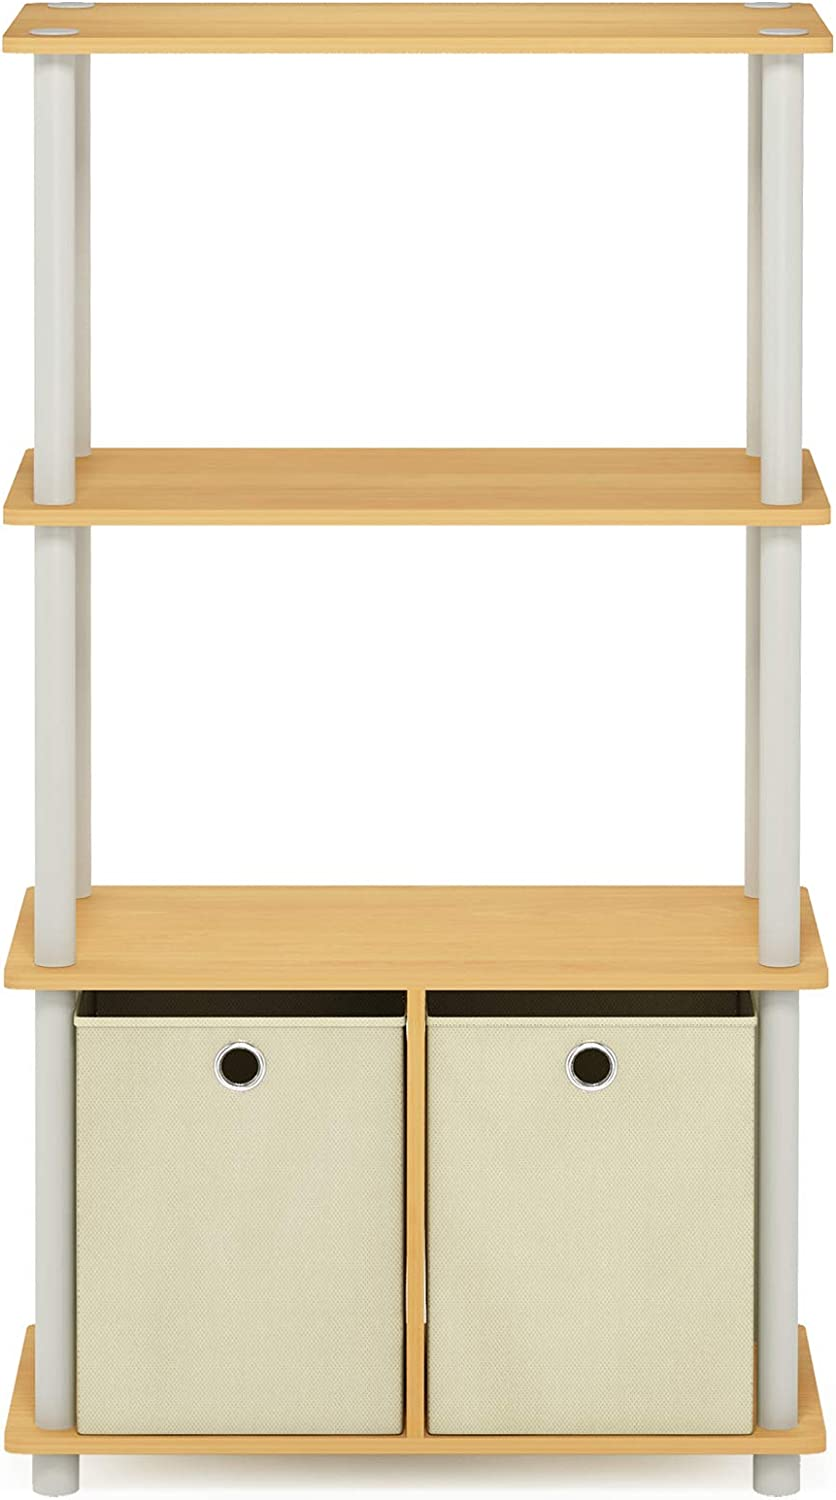 Furinno NW889BE/WH Go Green 4-Tier Multipurpose Storage Rack w/Bins, Beech/White: Kitchen & Dining